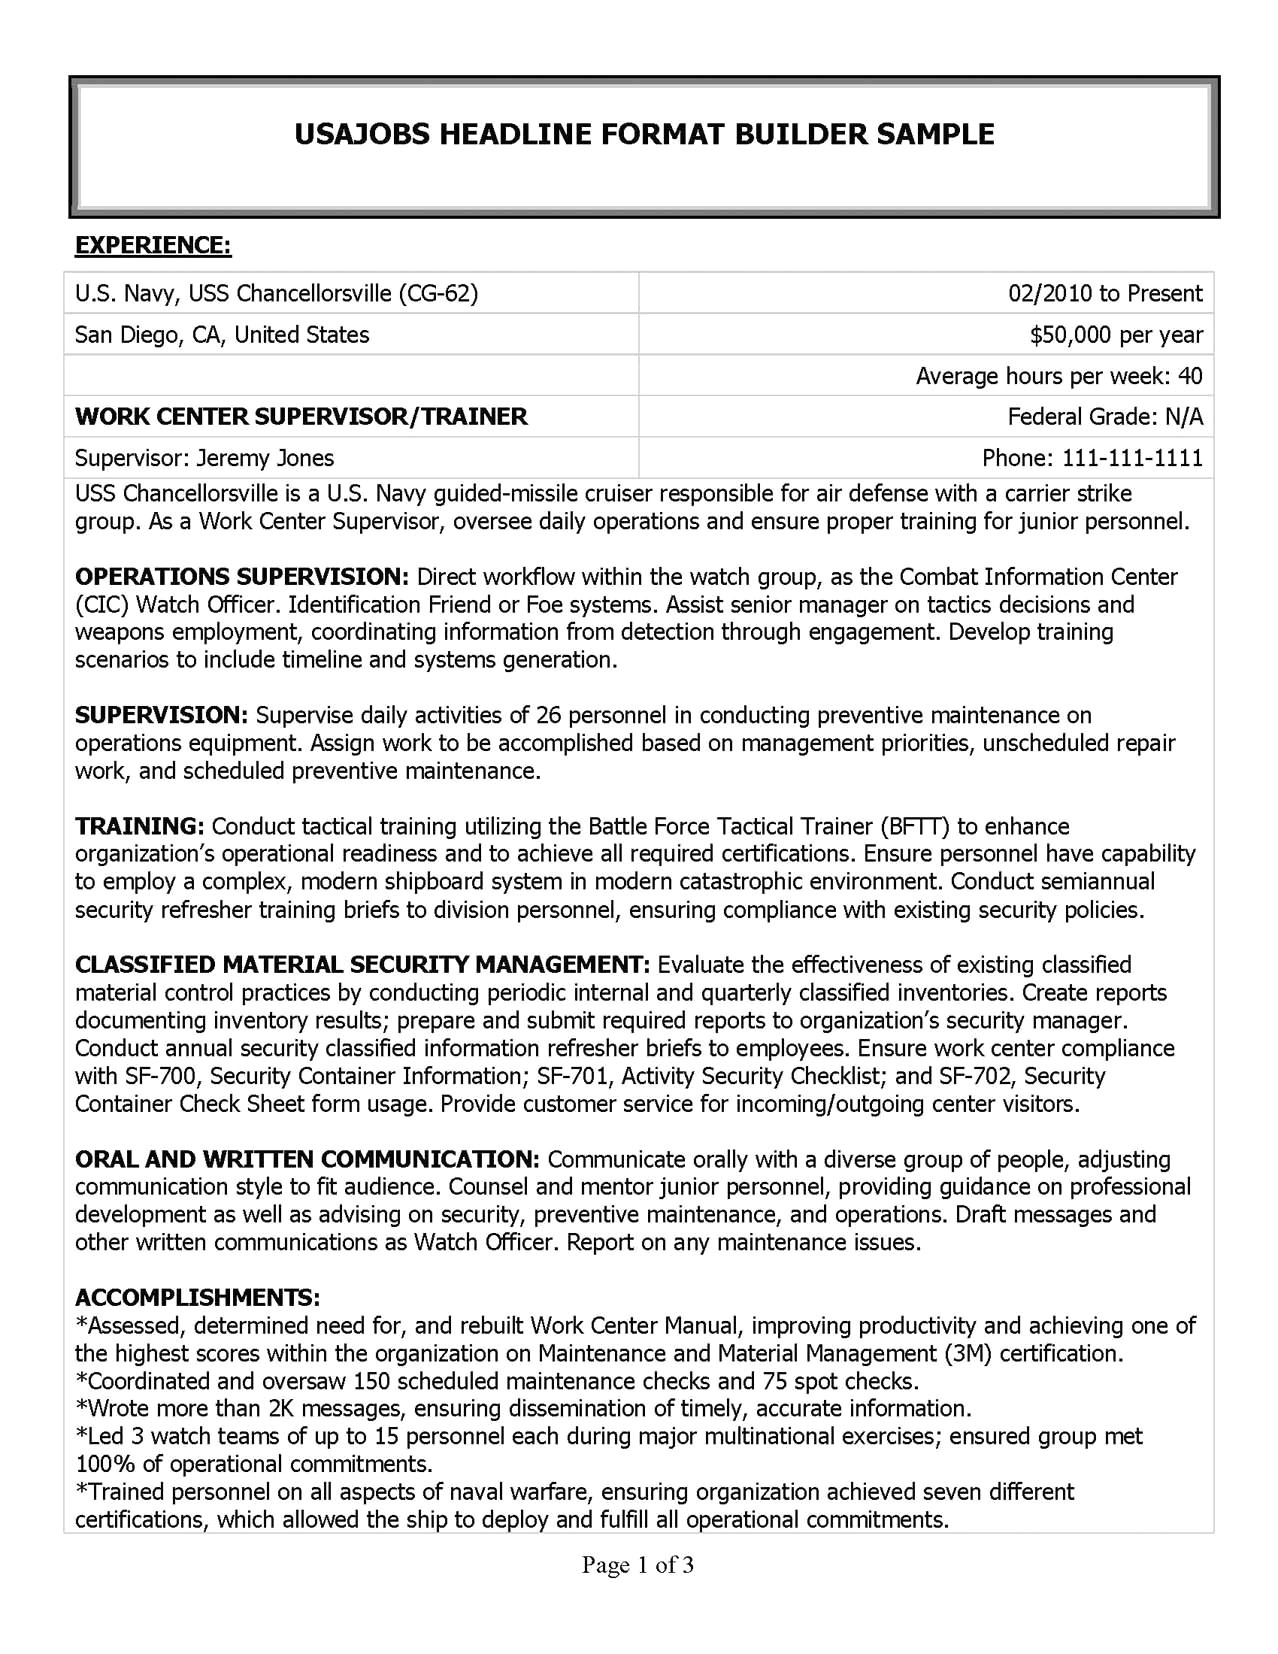 resume for government job Collection-Related Post resume for government job like Awesome Sample College Application Resume Lovely Painter Resume 0d 1-m